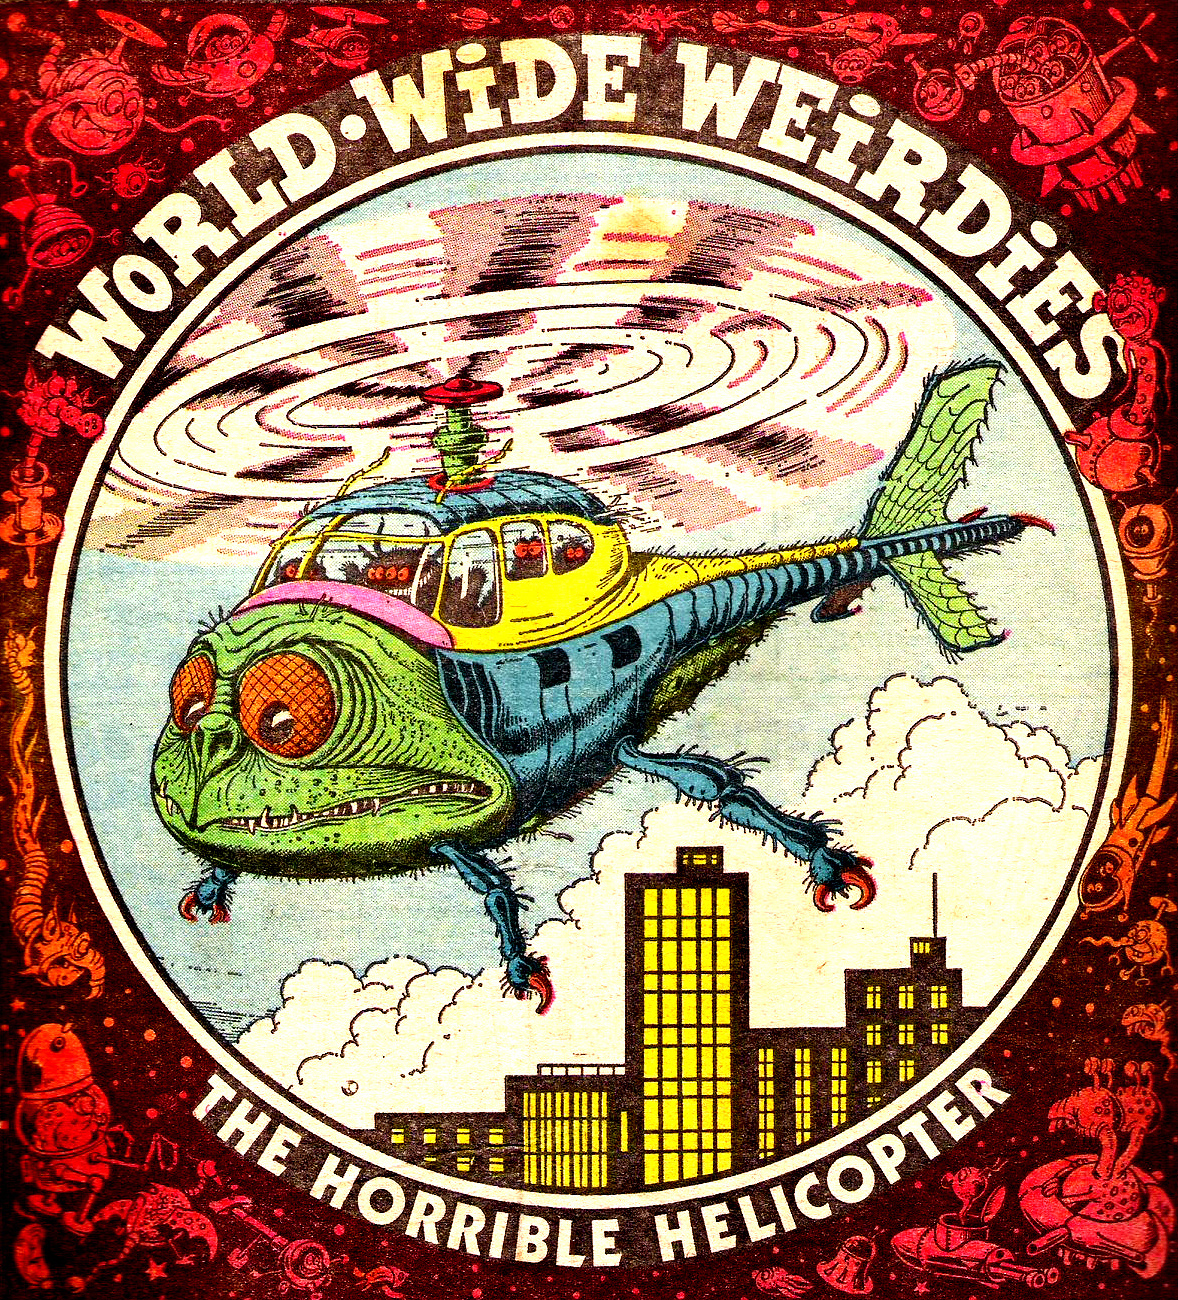 Ken Reid - World Wide Weirdies 20